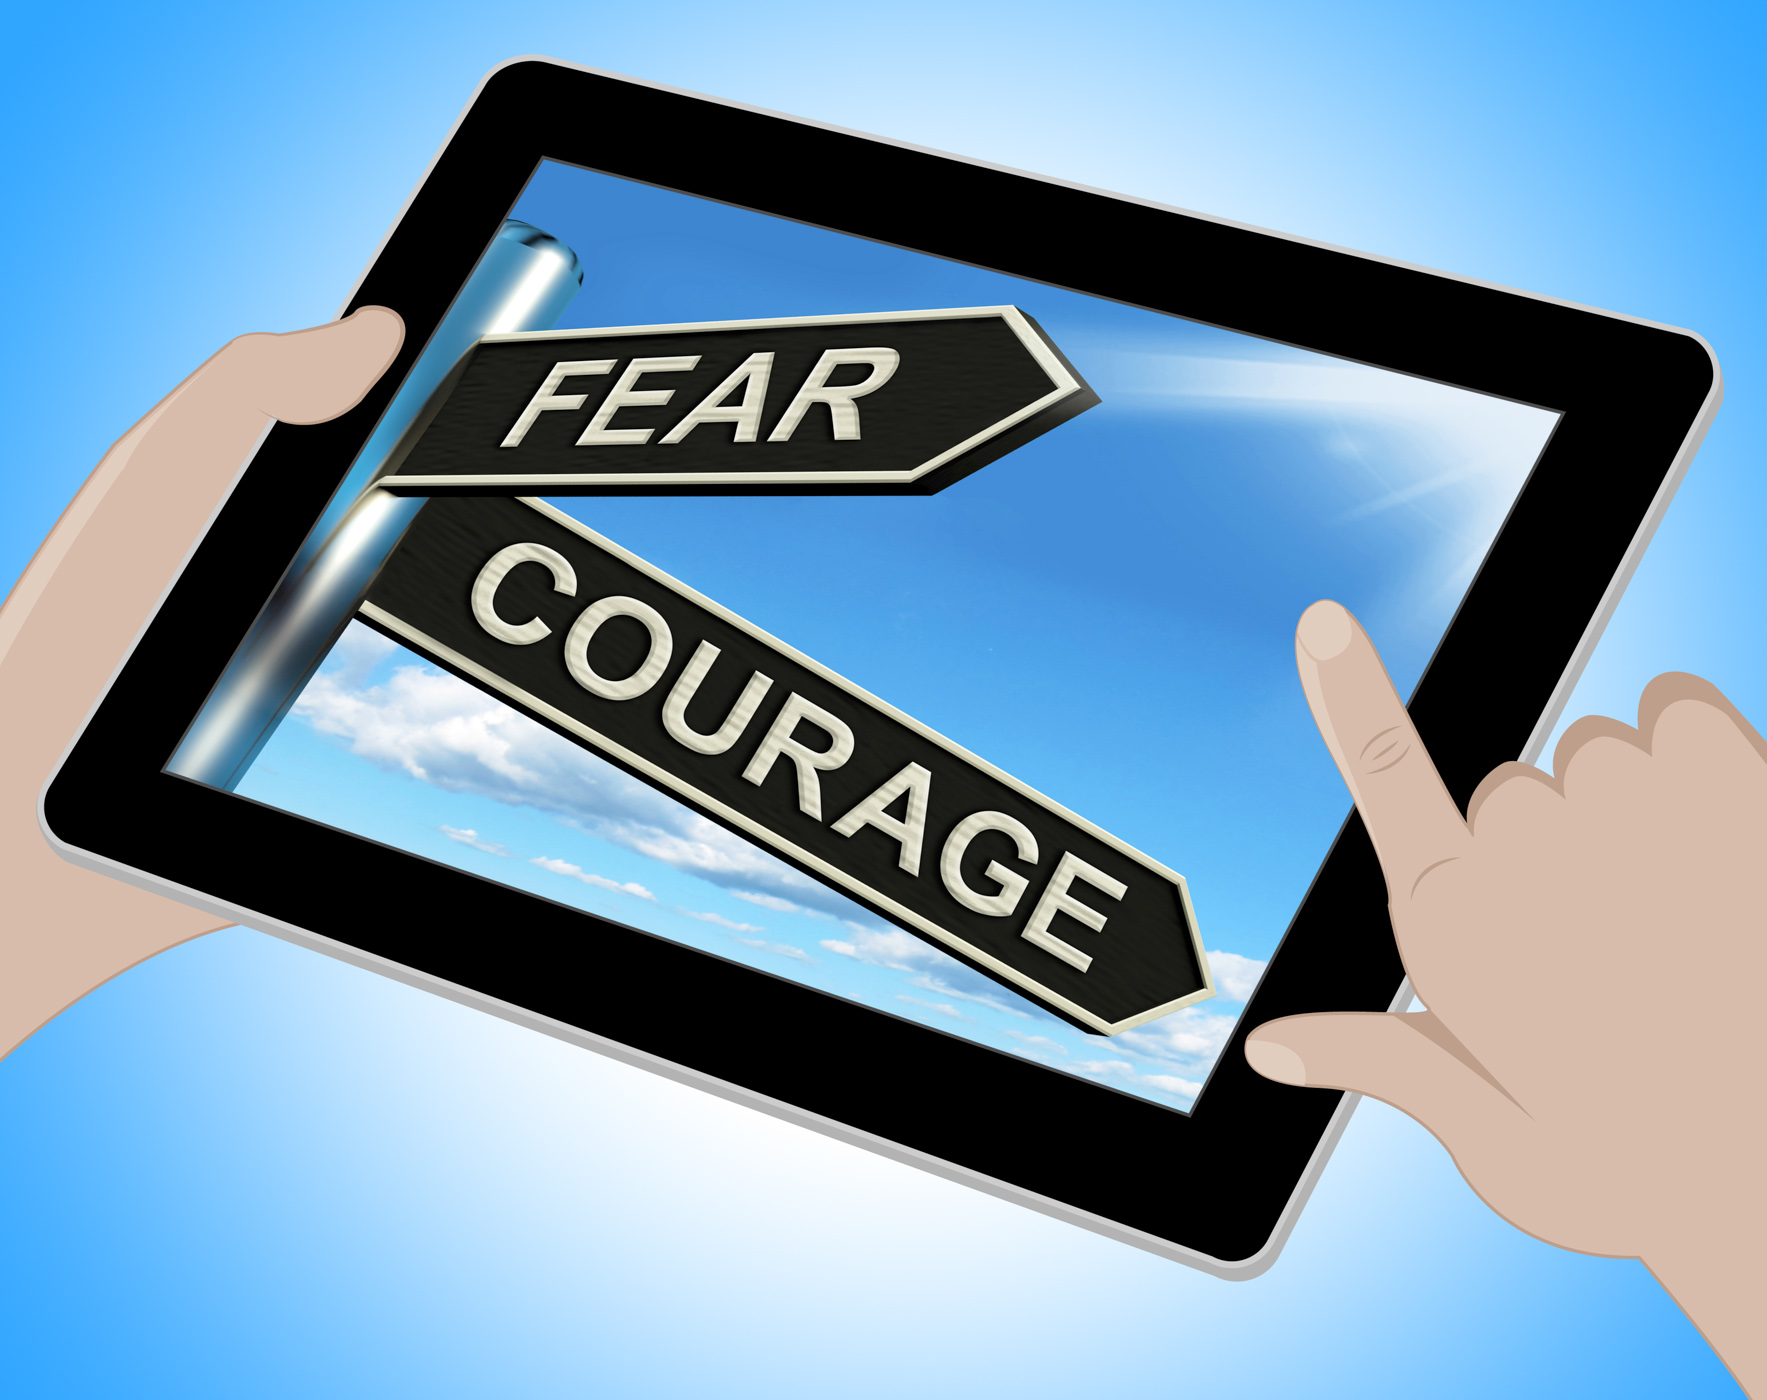 Fear courage tablet shows scared or courageous photo